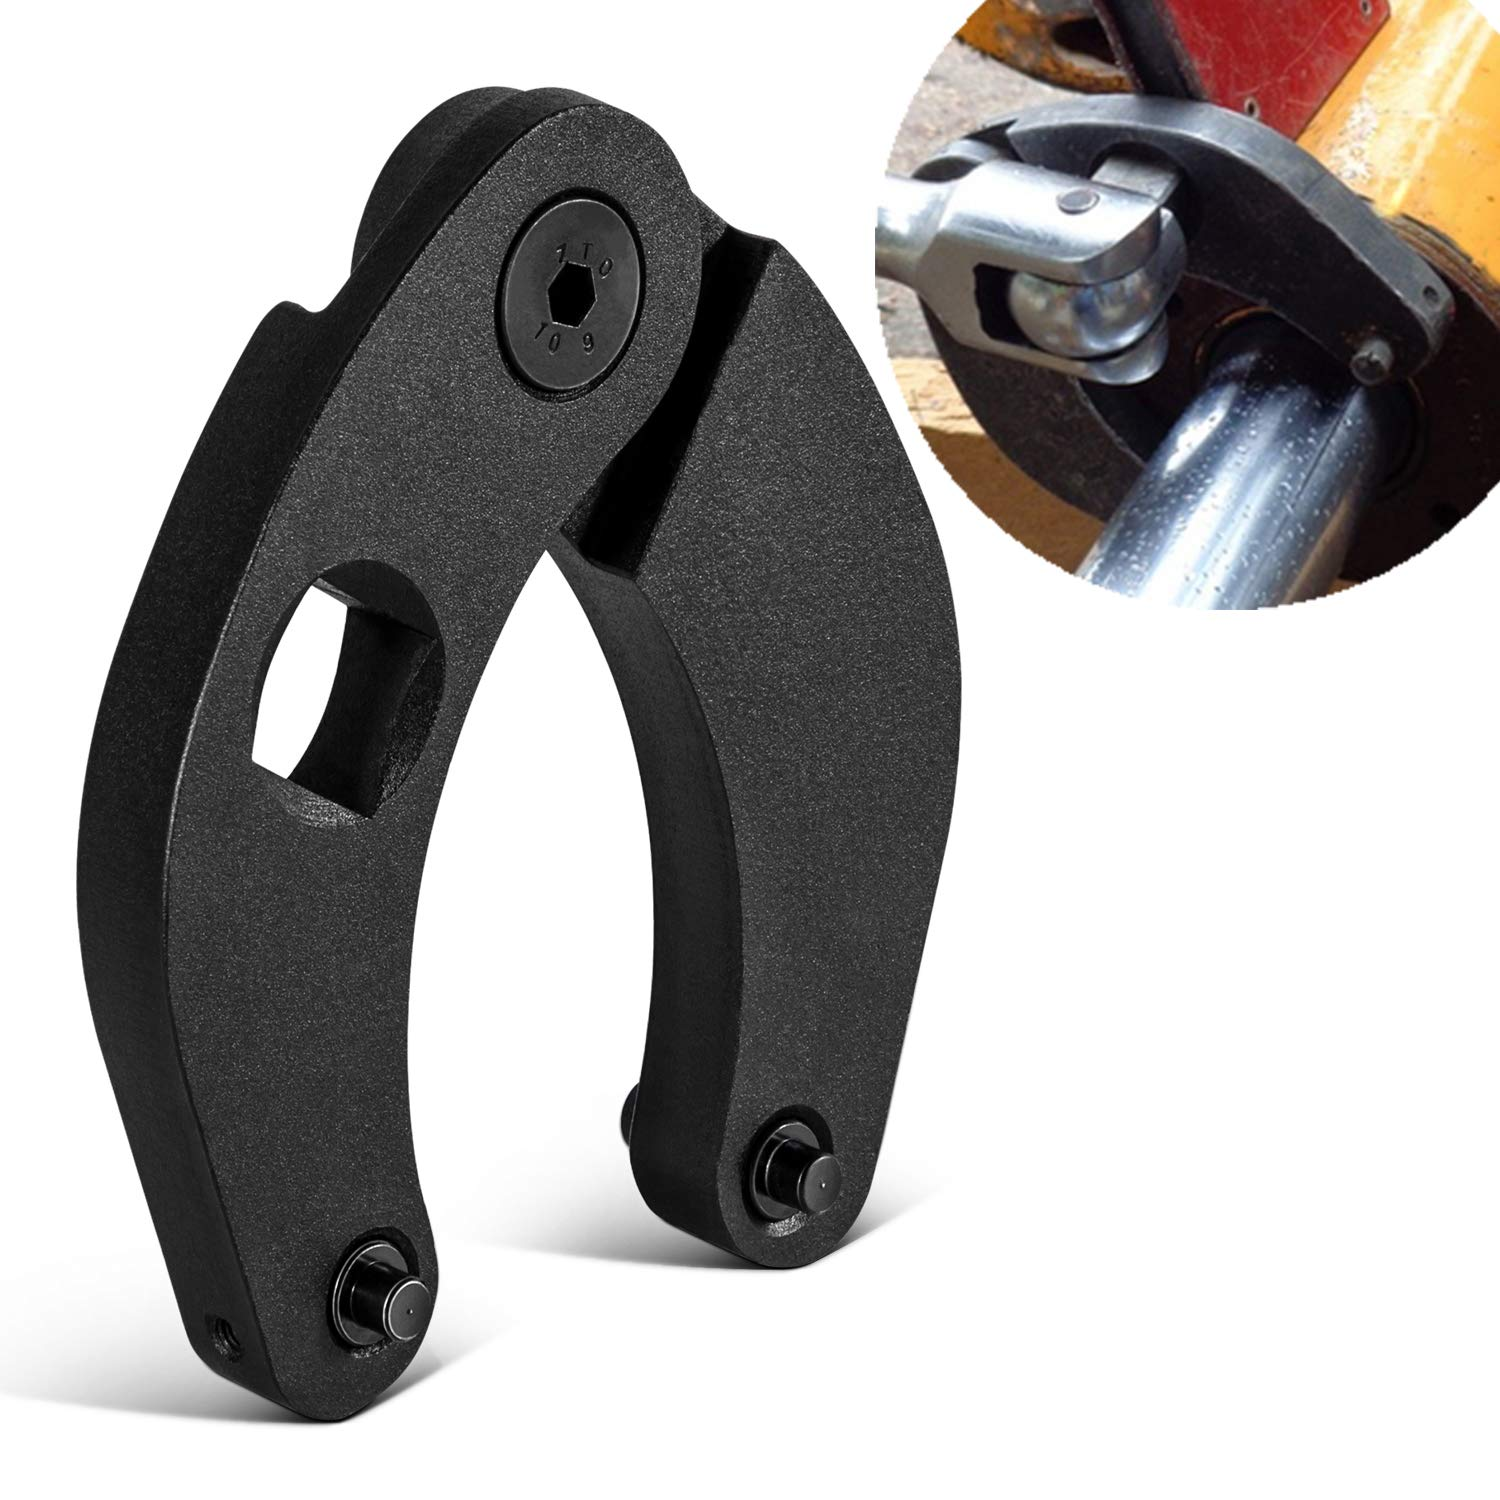 Pack of 2 SMALLFATW 1266 /&7463 Adjustable Gland Nut Wrench Small and Large Universal Adjustable Gland Nut Wrench for Hydraulic Cylinder